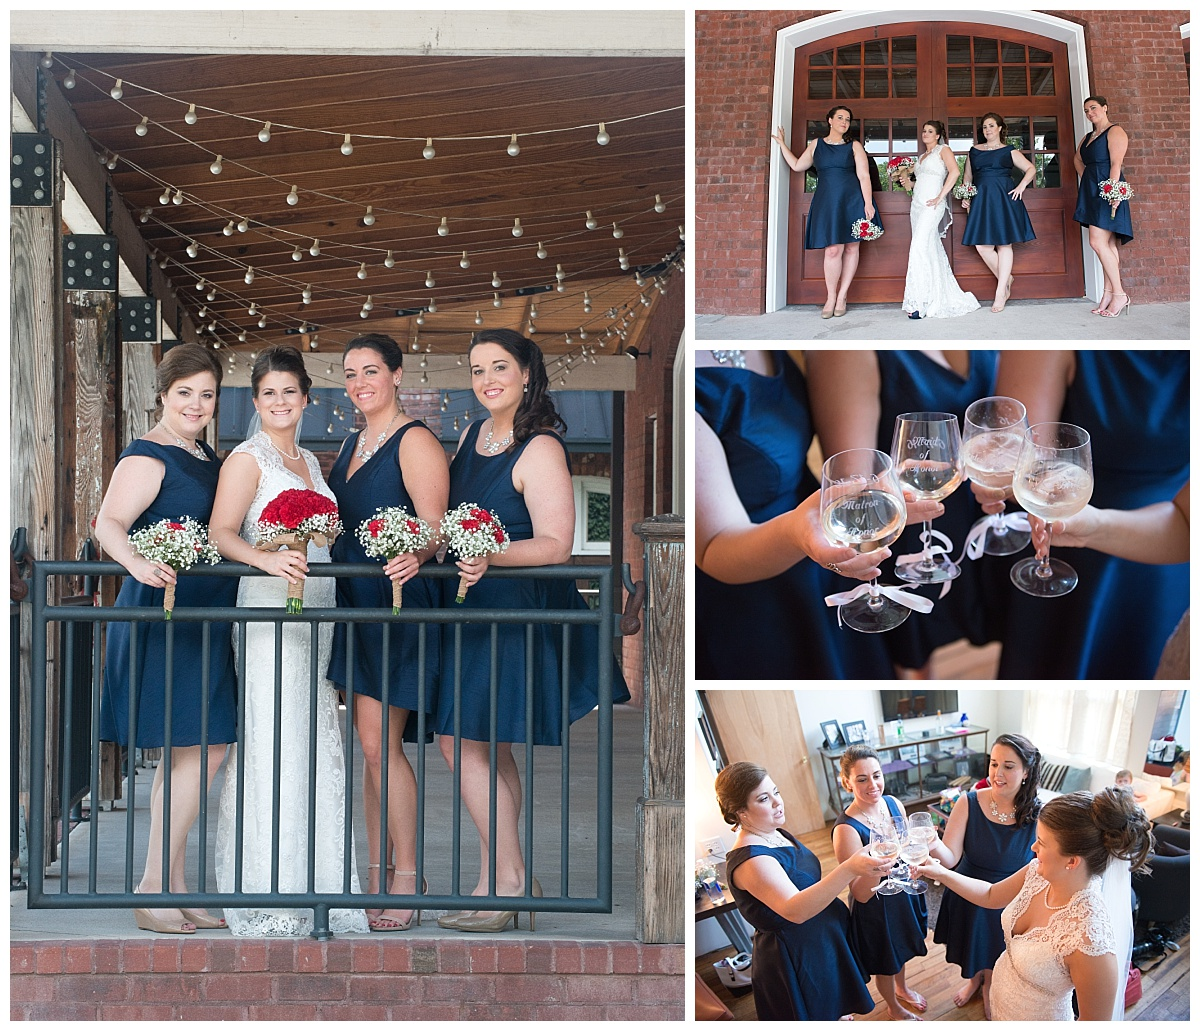 Bridesmaids in navy blue short dresses